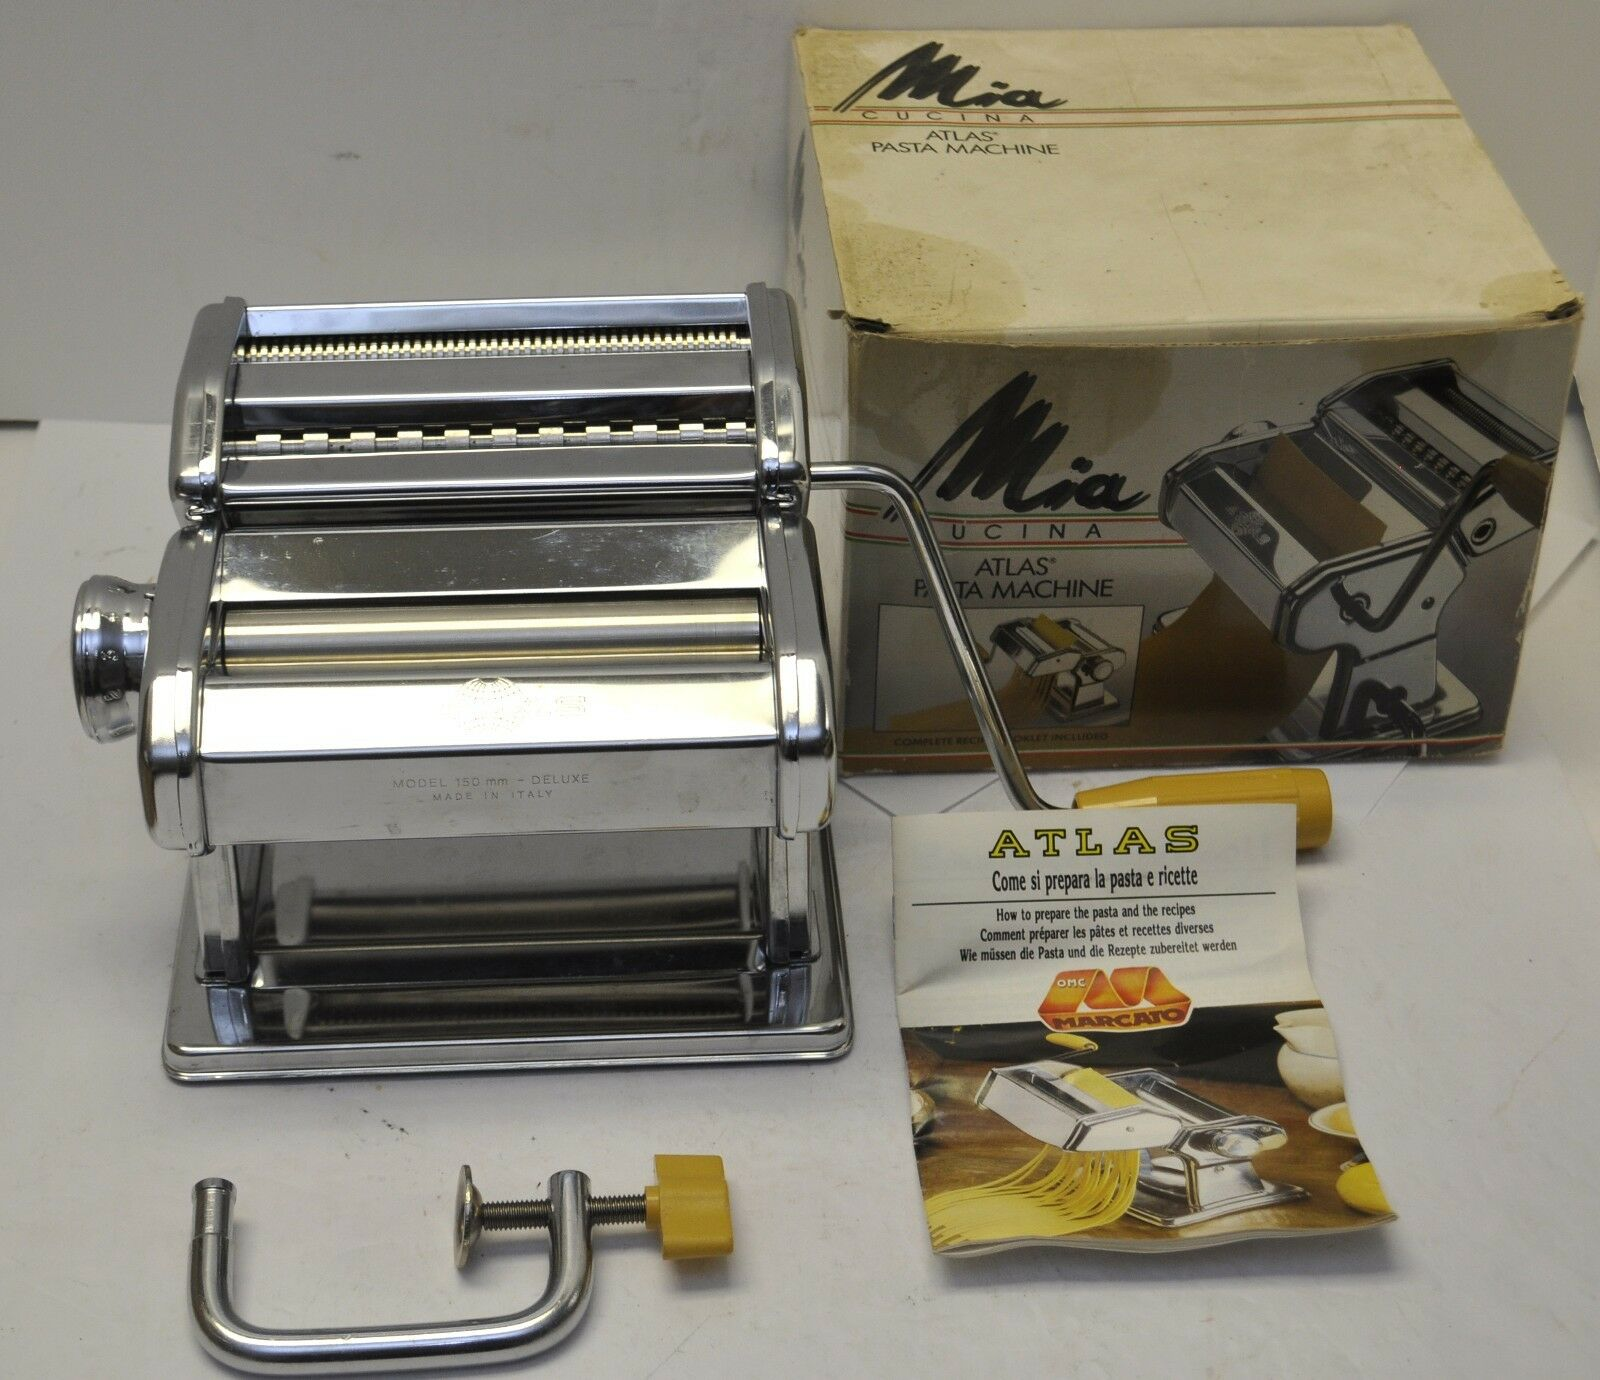 Marcato Atlas OMC Delux Mia Cucina 150 mm Pasta Maker Made in